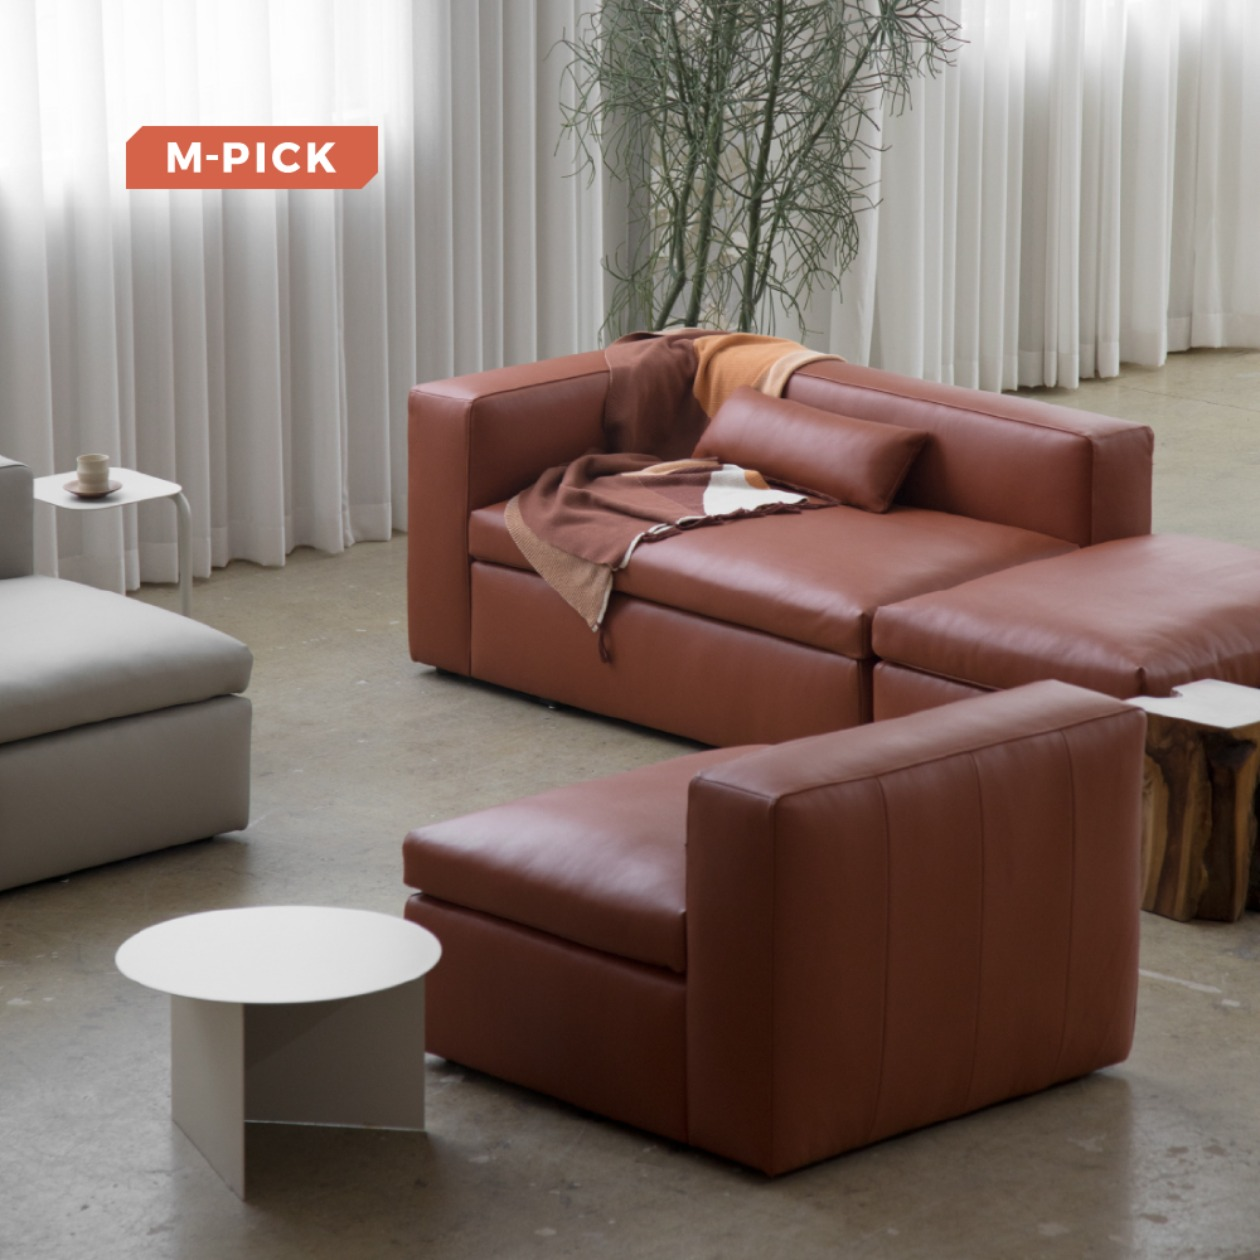 TIMELESS SOFT SOFA / LEATHER